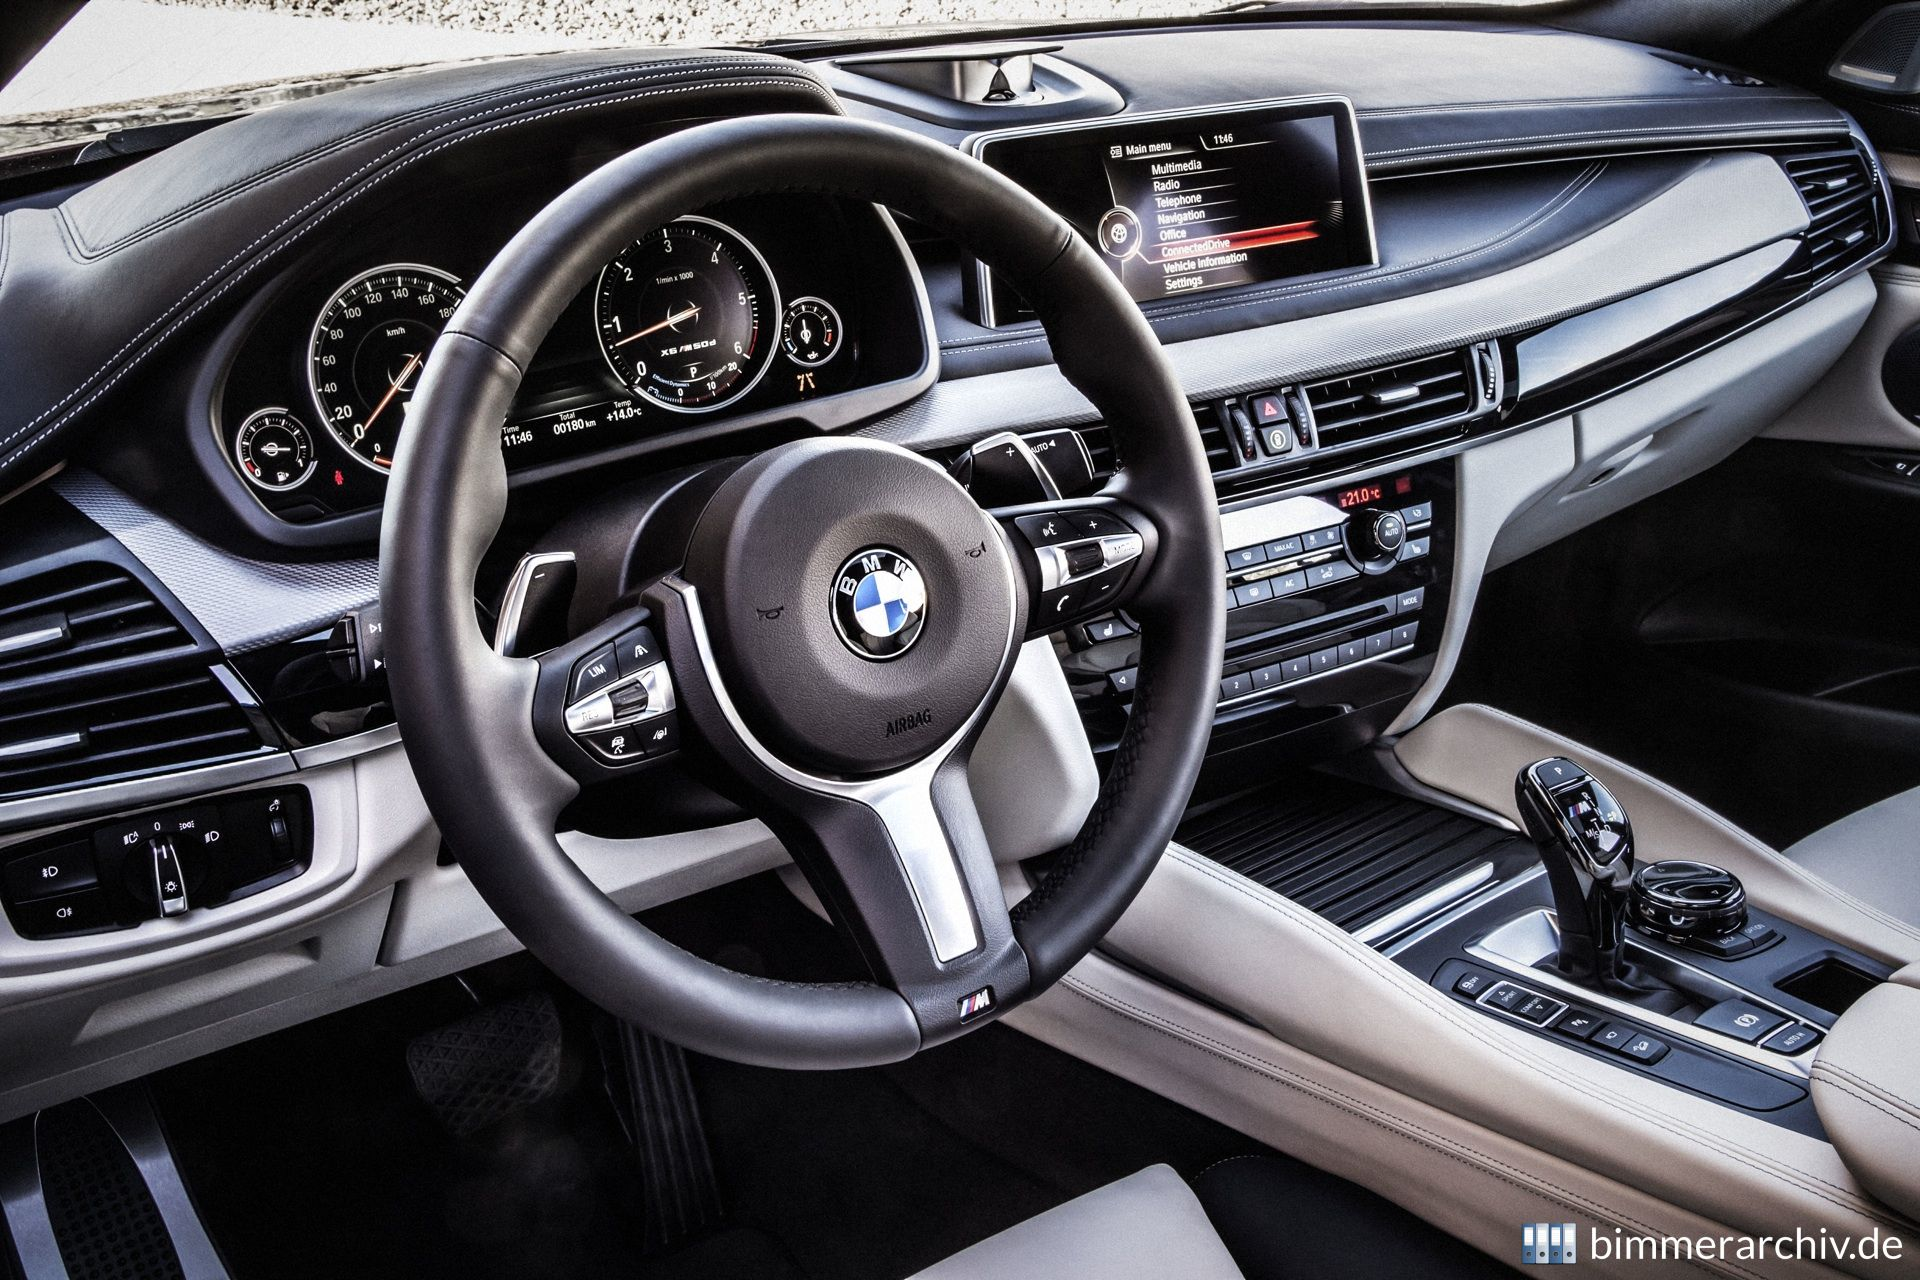 model archive for bmw models bmw x6 m50d interior design pure